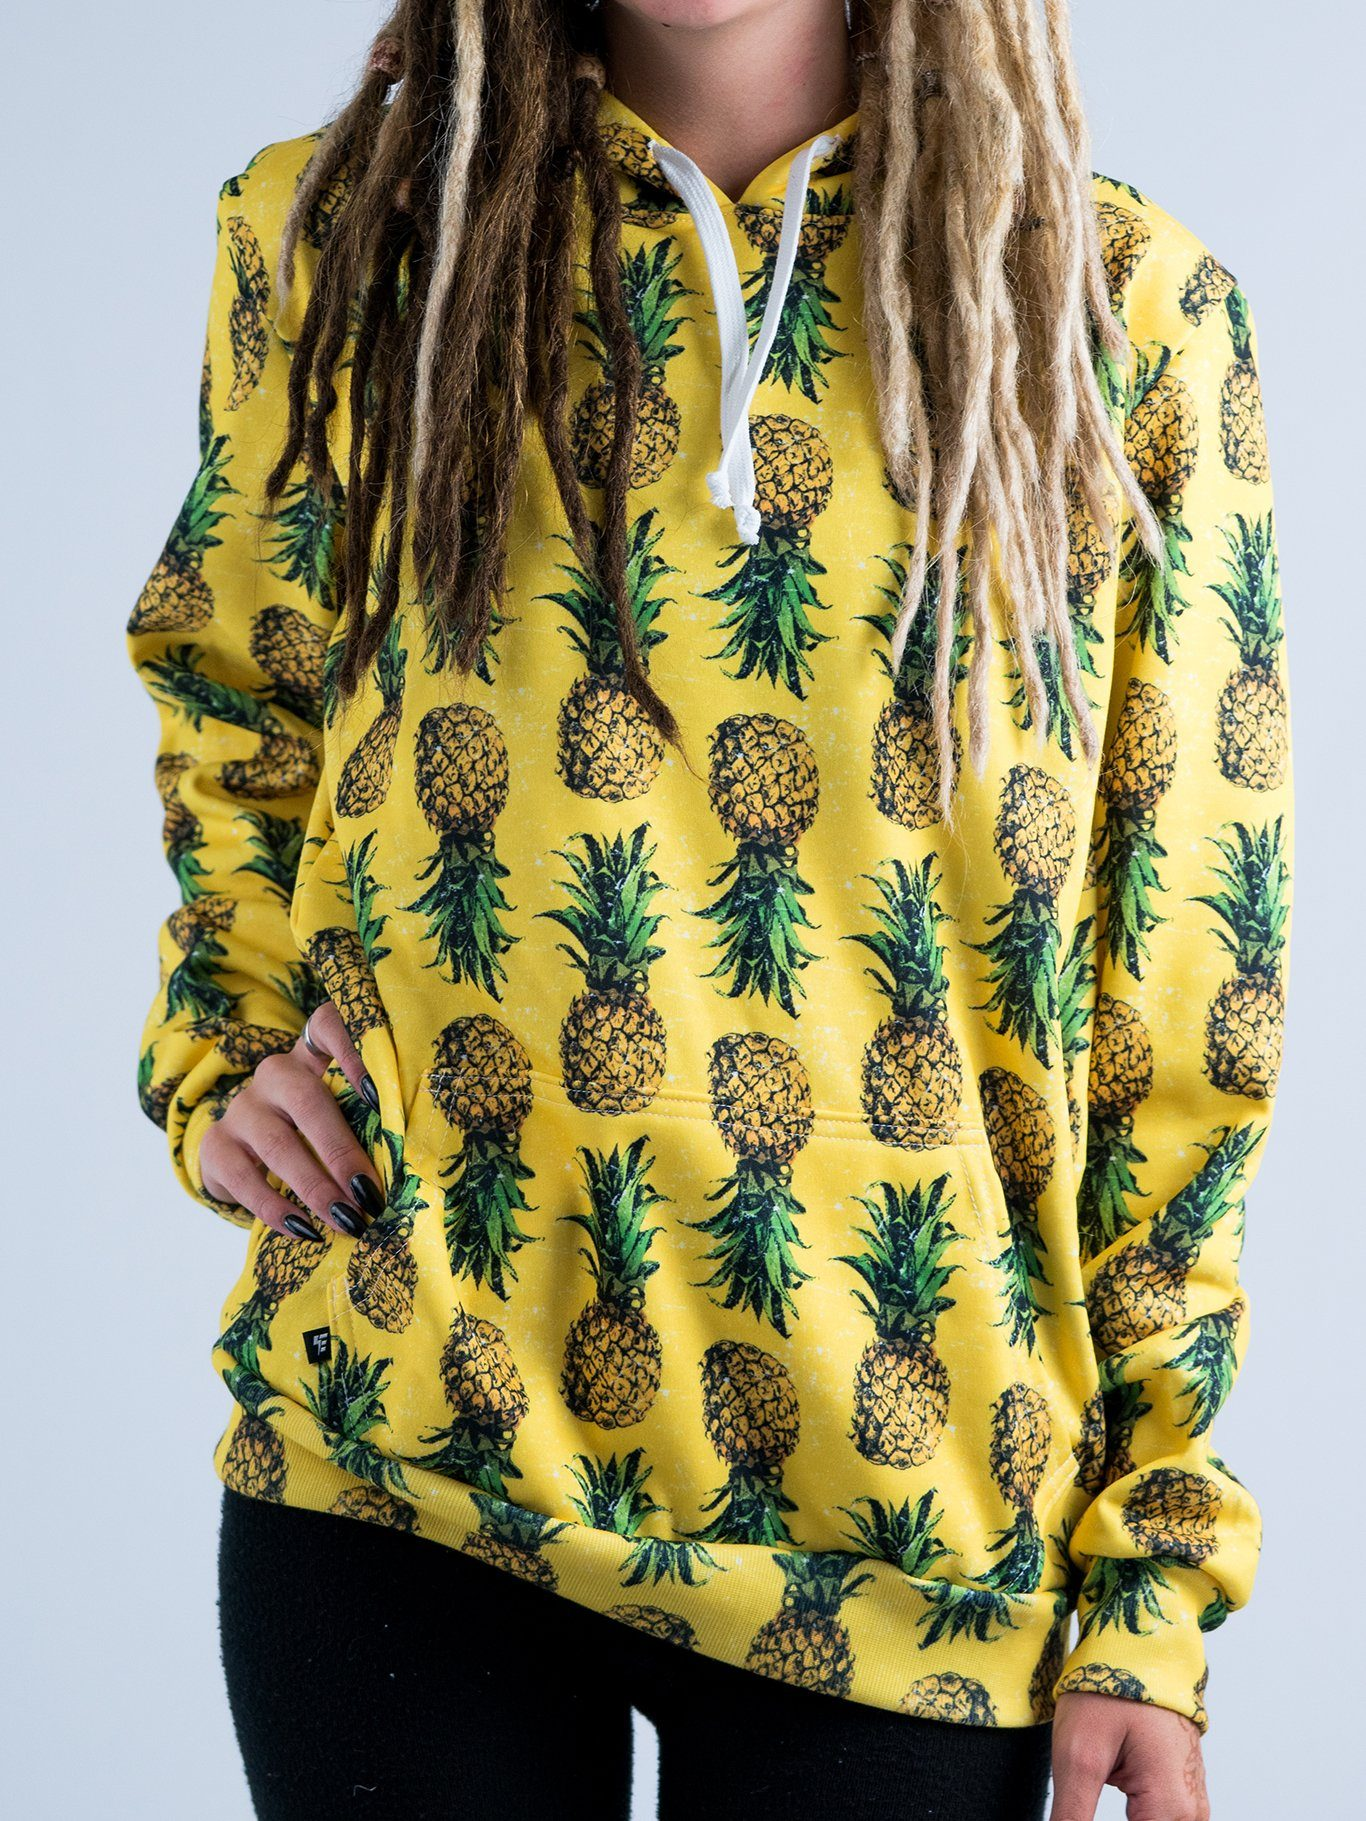 Pineapple Unisex Hoodie Pullover Hoodies T6 X-Small Yellow Pullover Hoodie